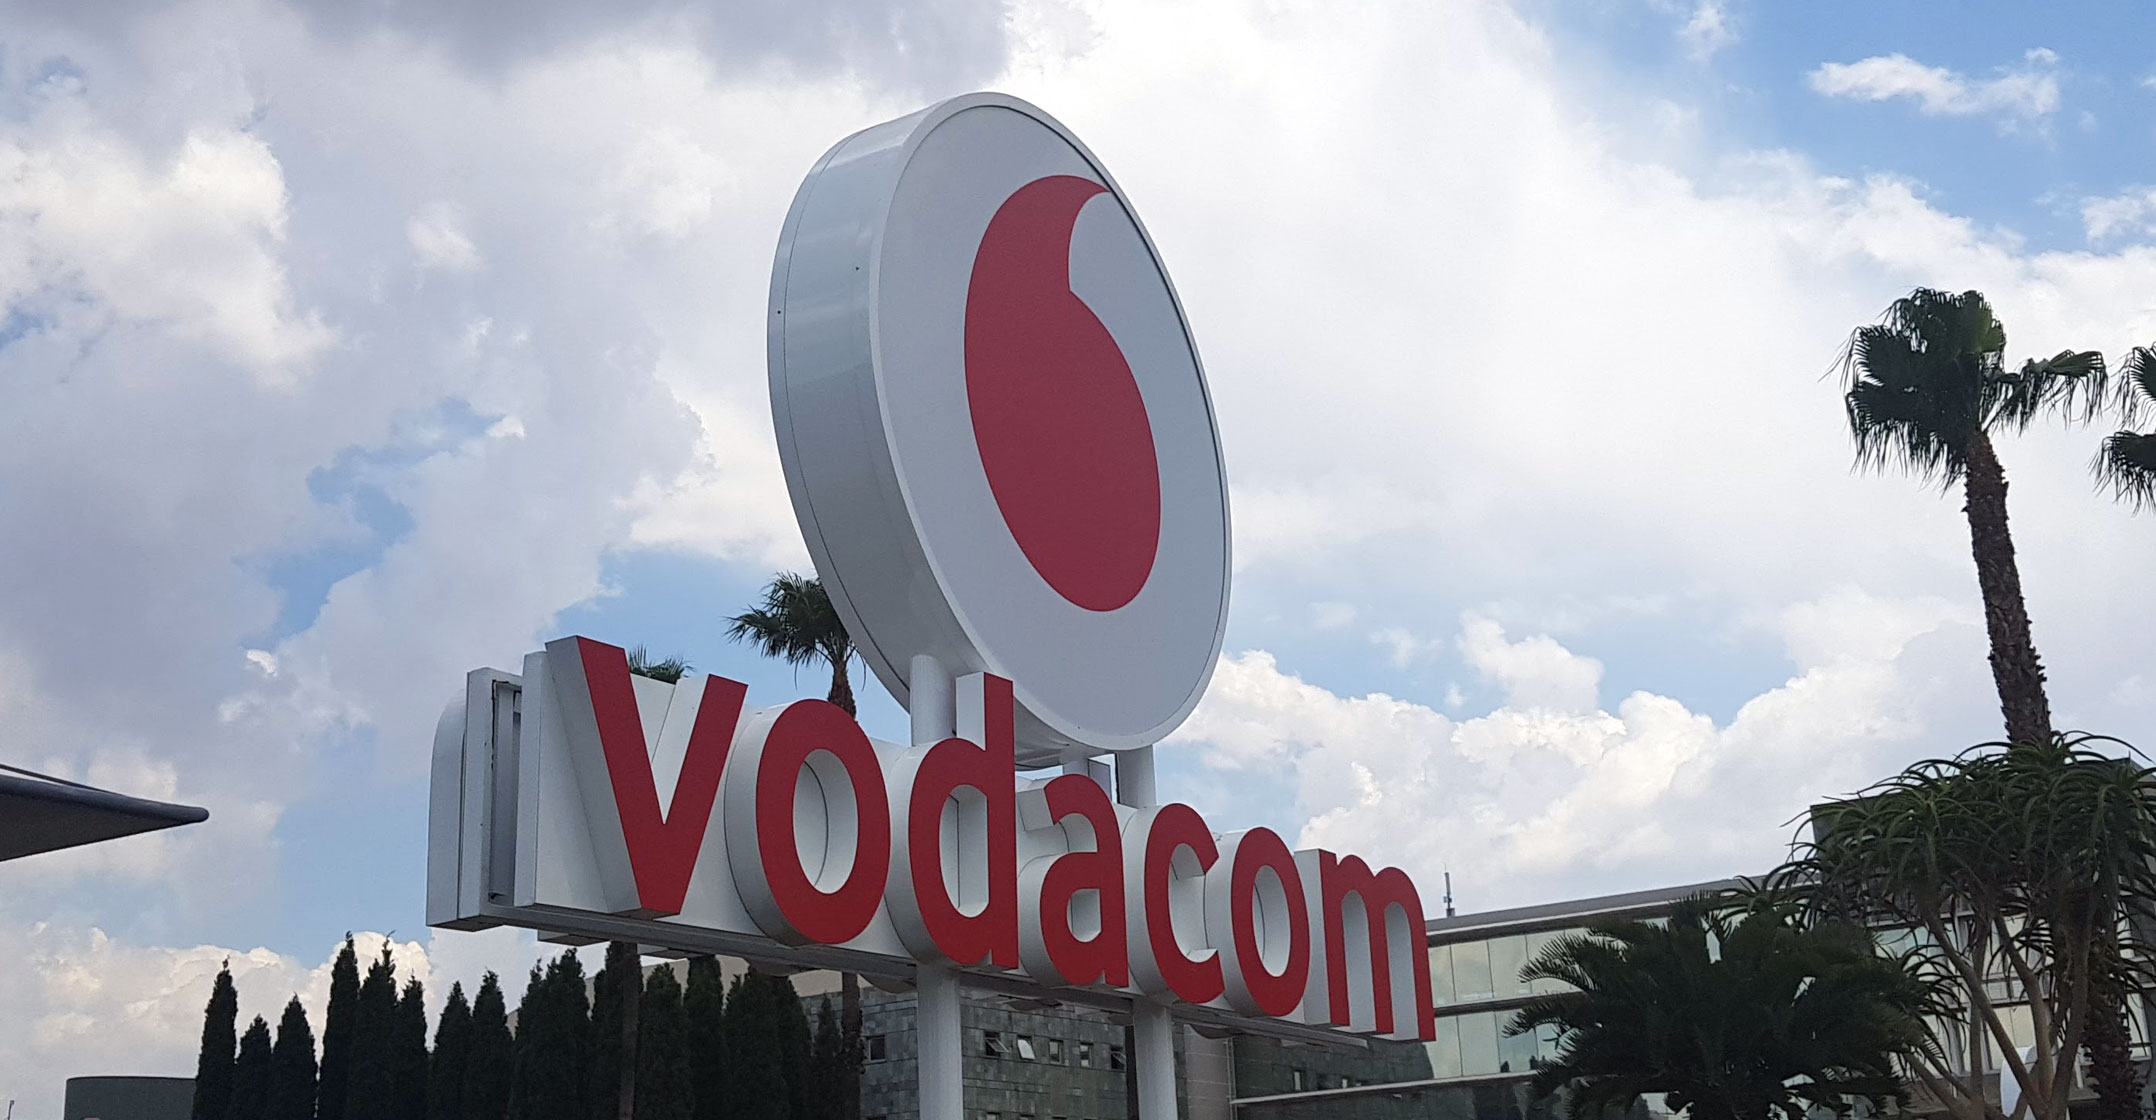 Vodacom To Reduce Data Prices By 30% From April